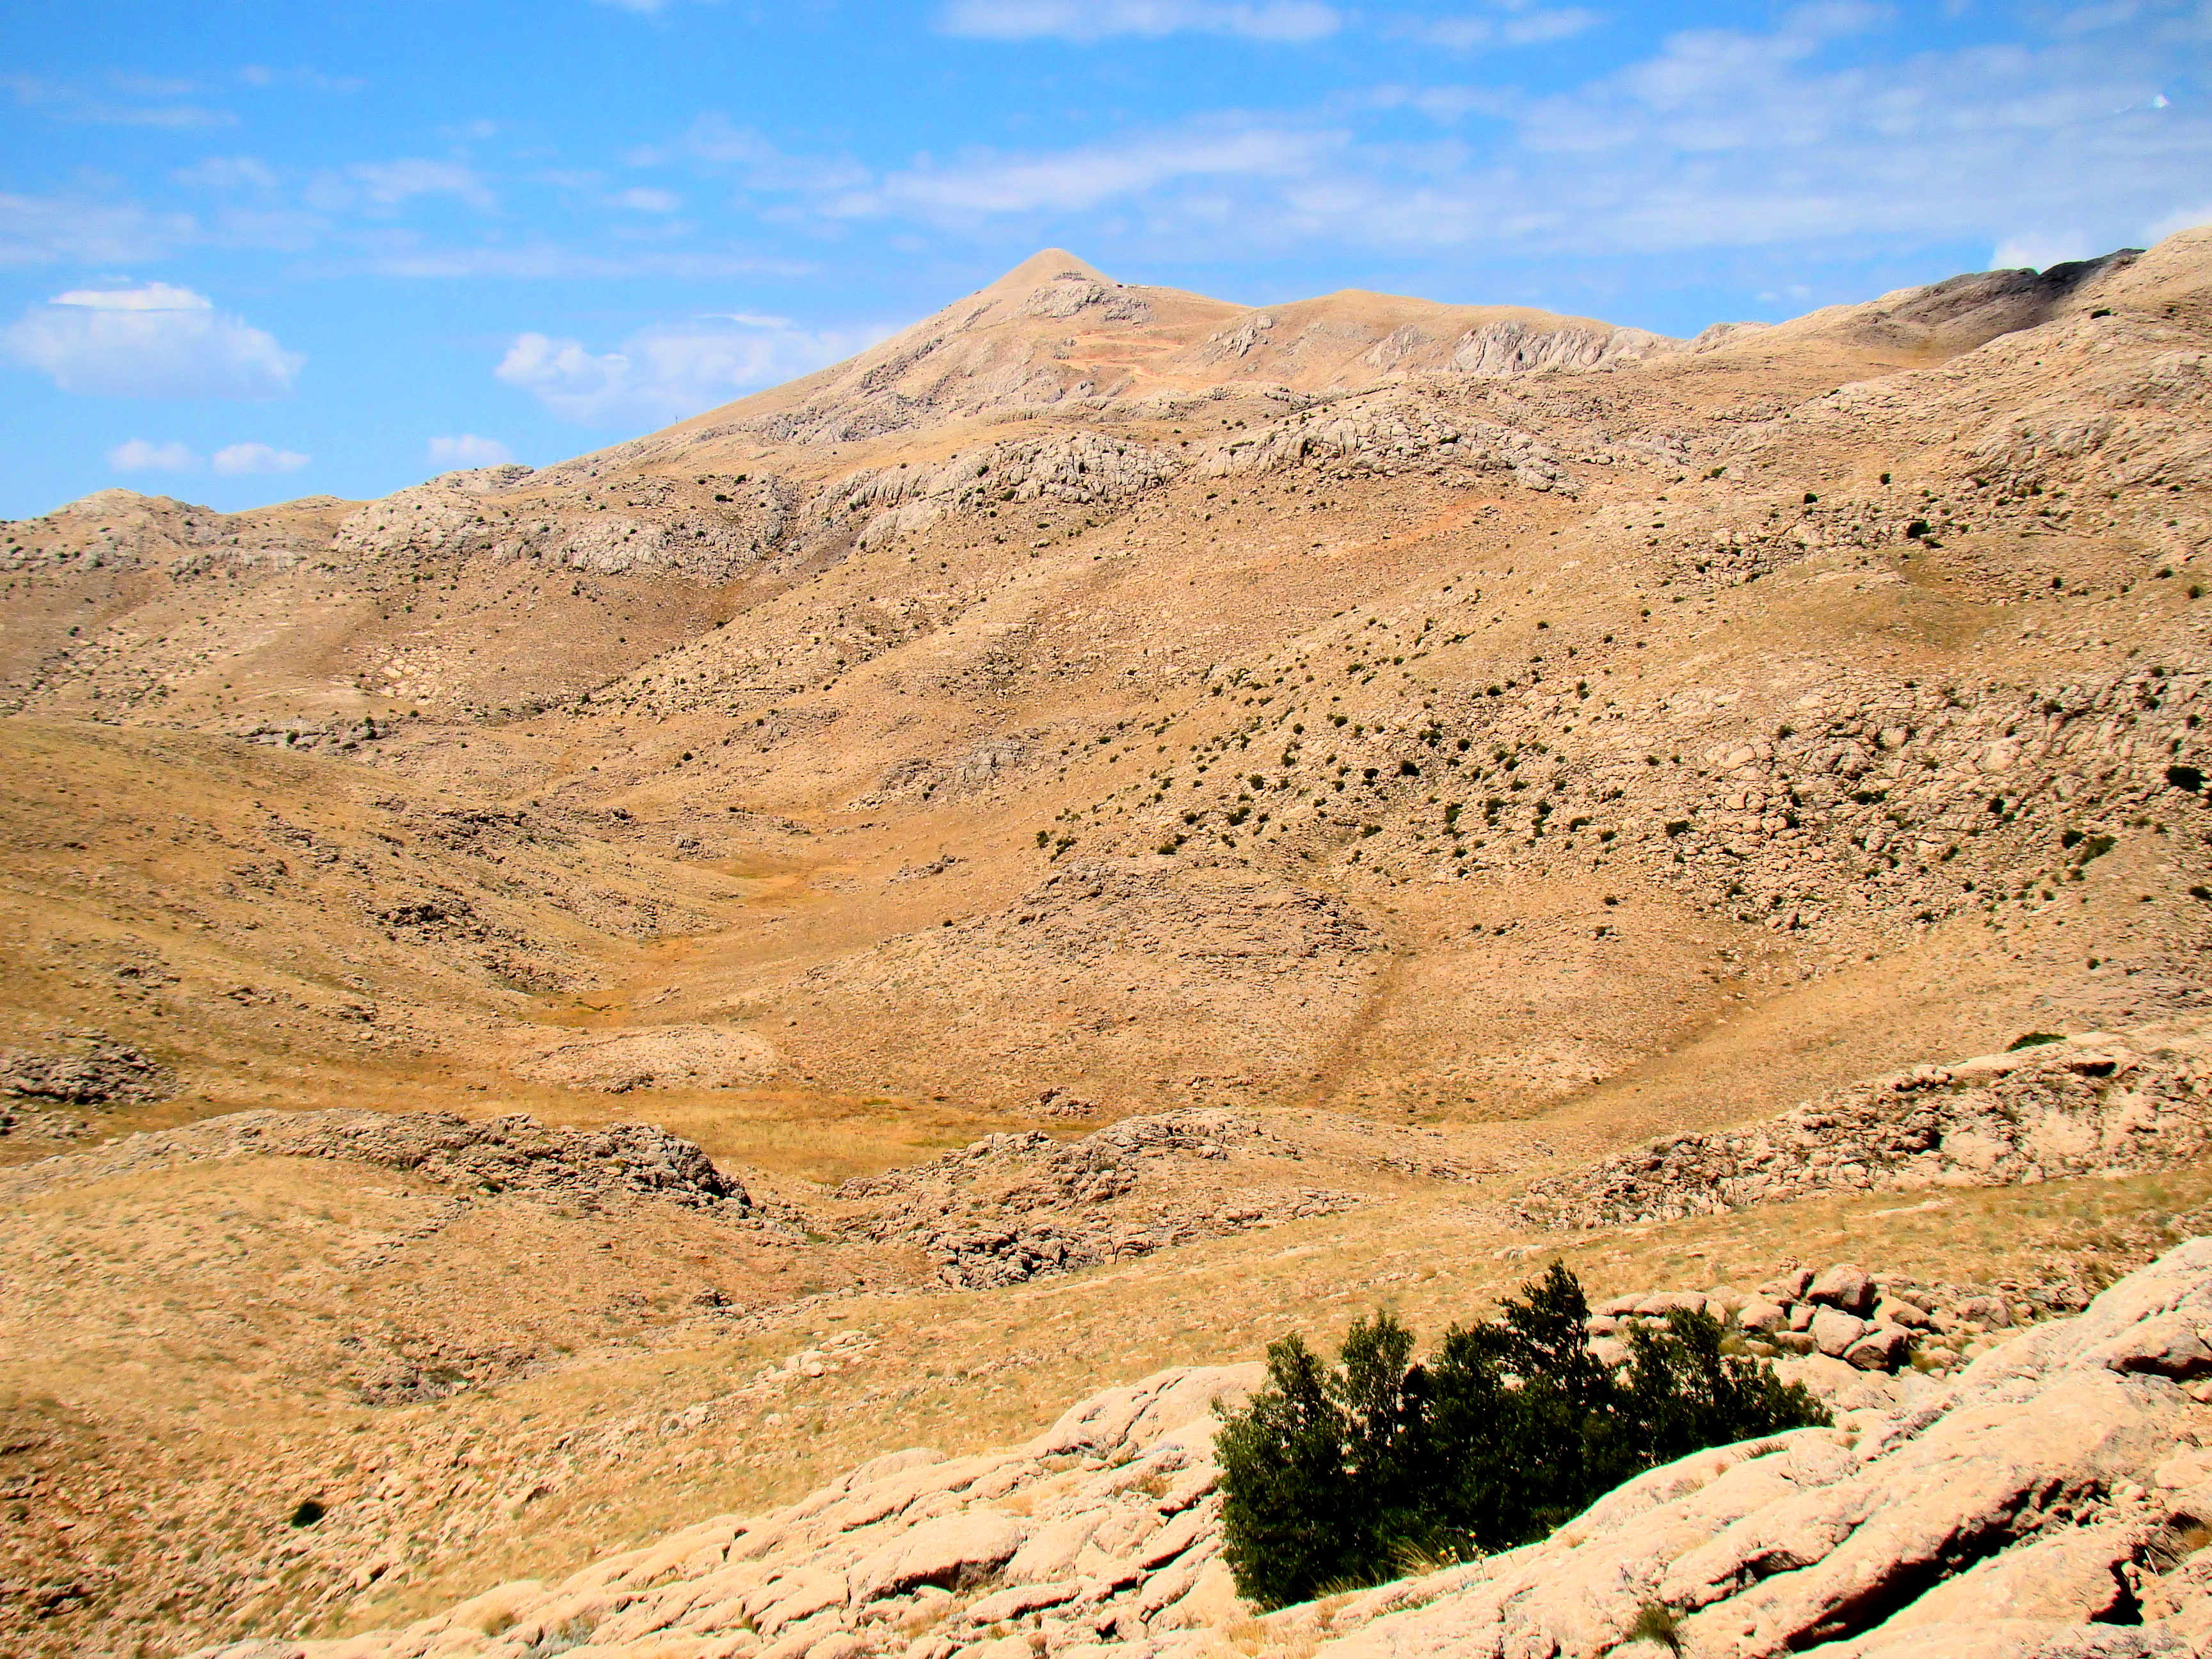 http://upload.wikimedia.org/wikipedia/commons/7/7d/Mount_Nemrut_2134m_From_Northeast.JPG